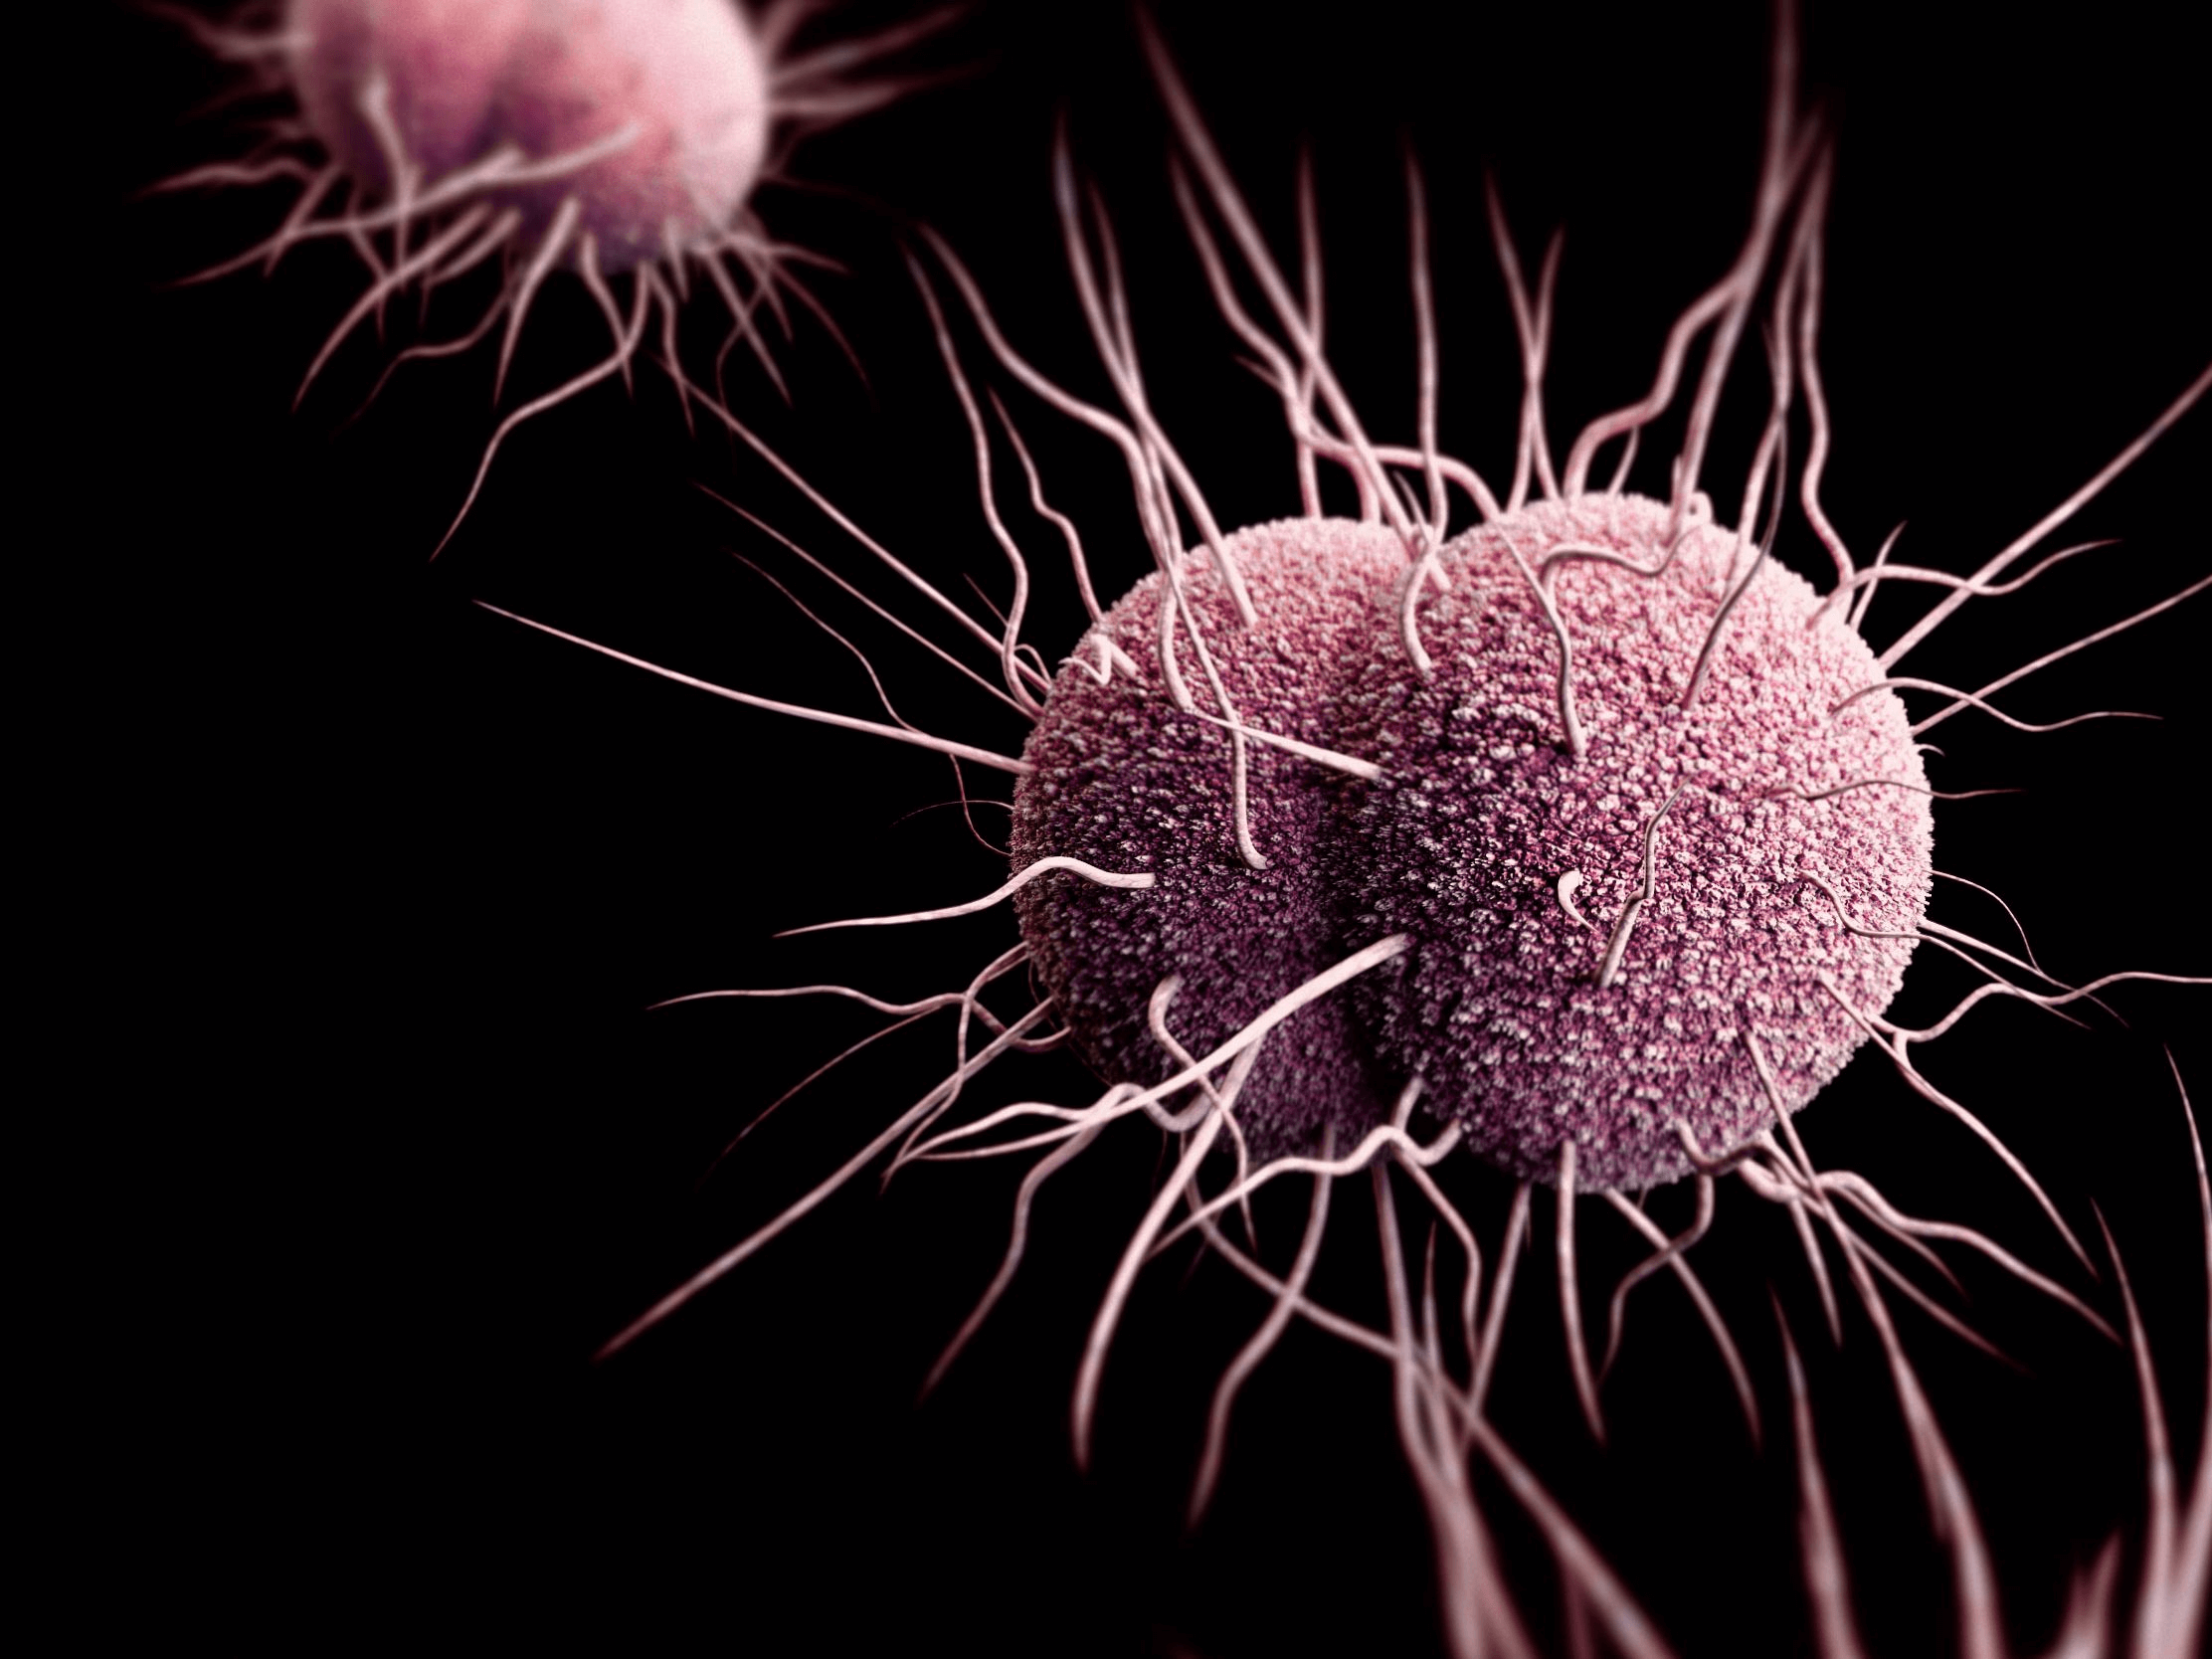 Gonorrhoea antibiotic-resistance on the rise